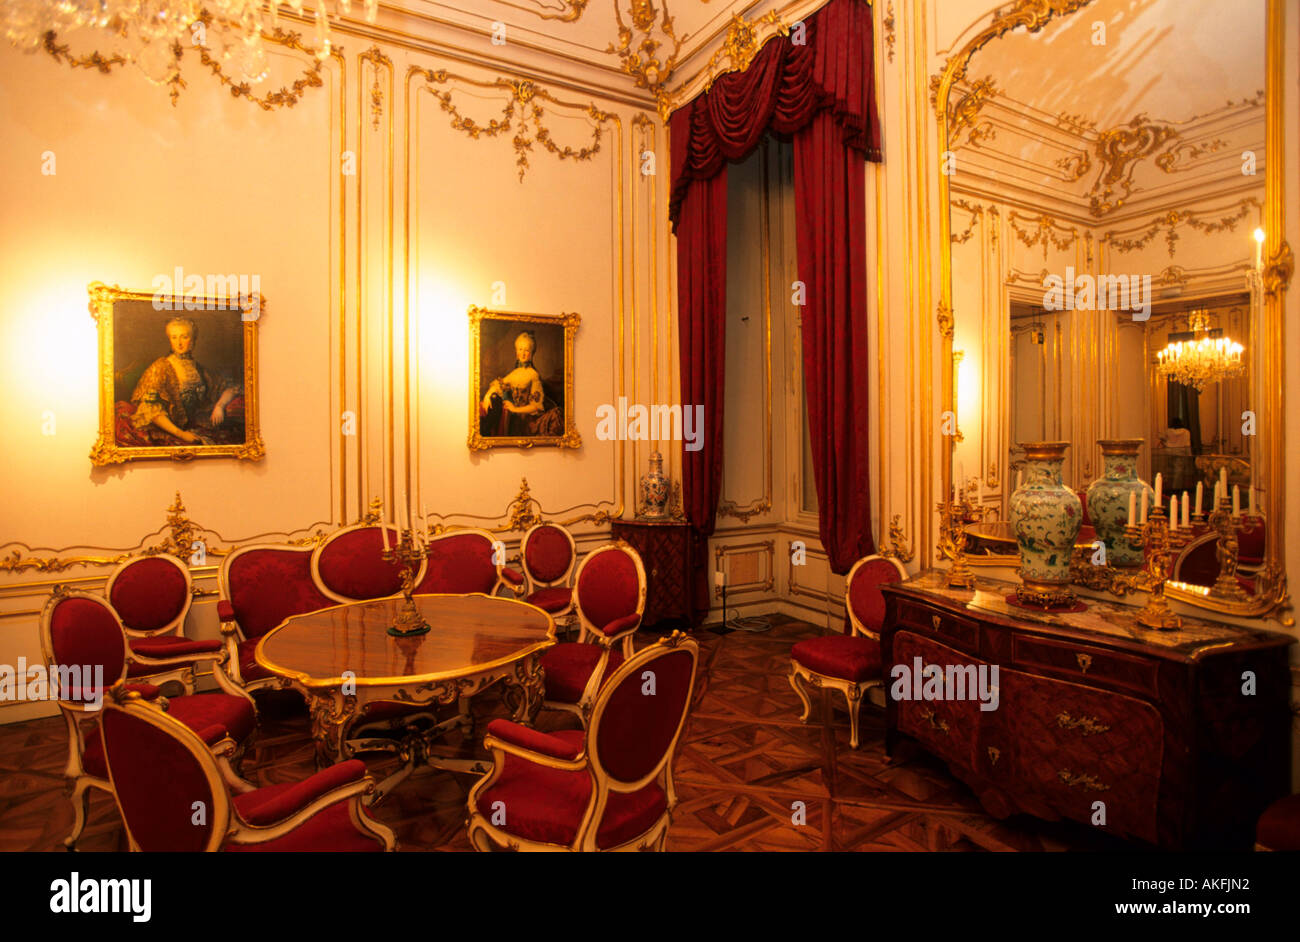 schloss sch nbrunn kinderzimmer stock photo royalty free. Black Bedroom Furniture Sets. Home Design Ideas